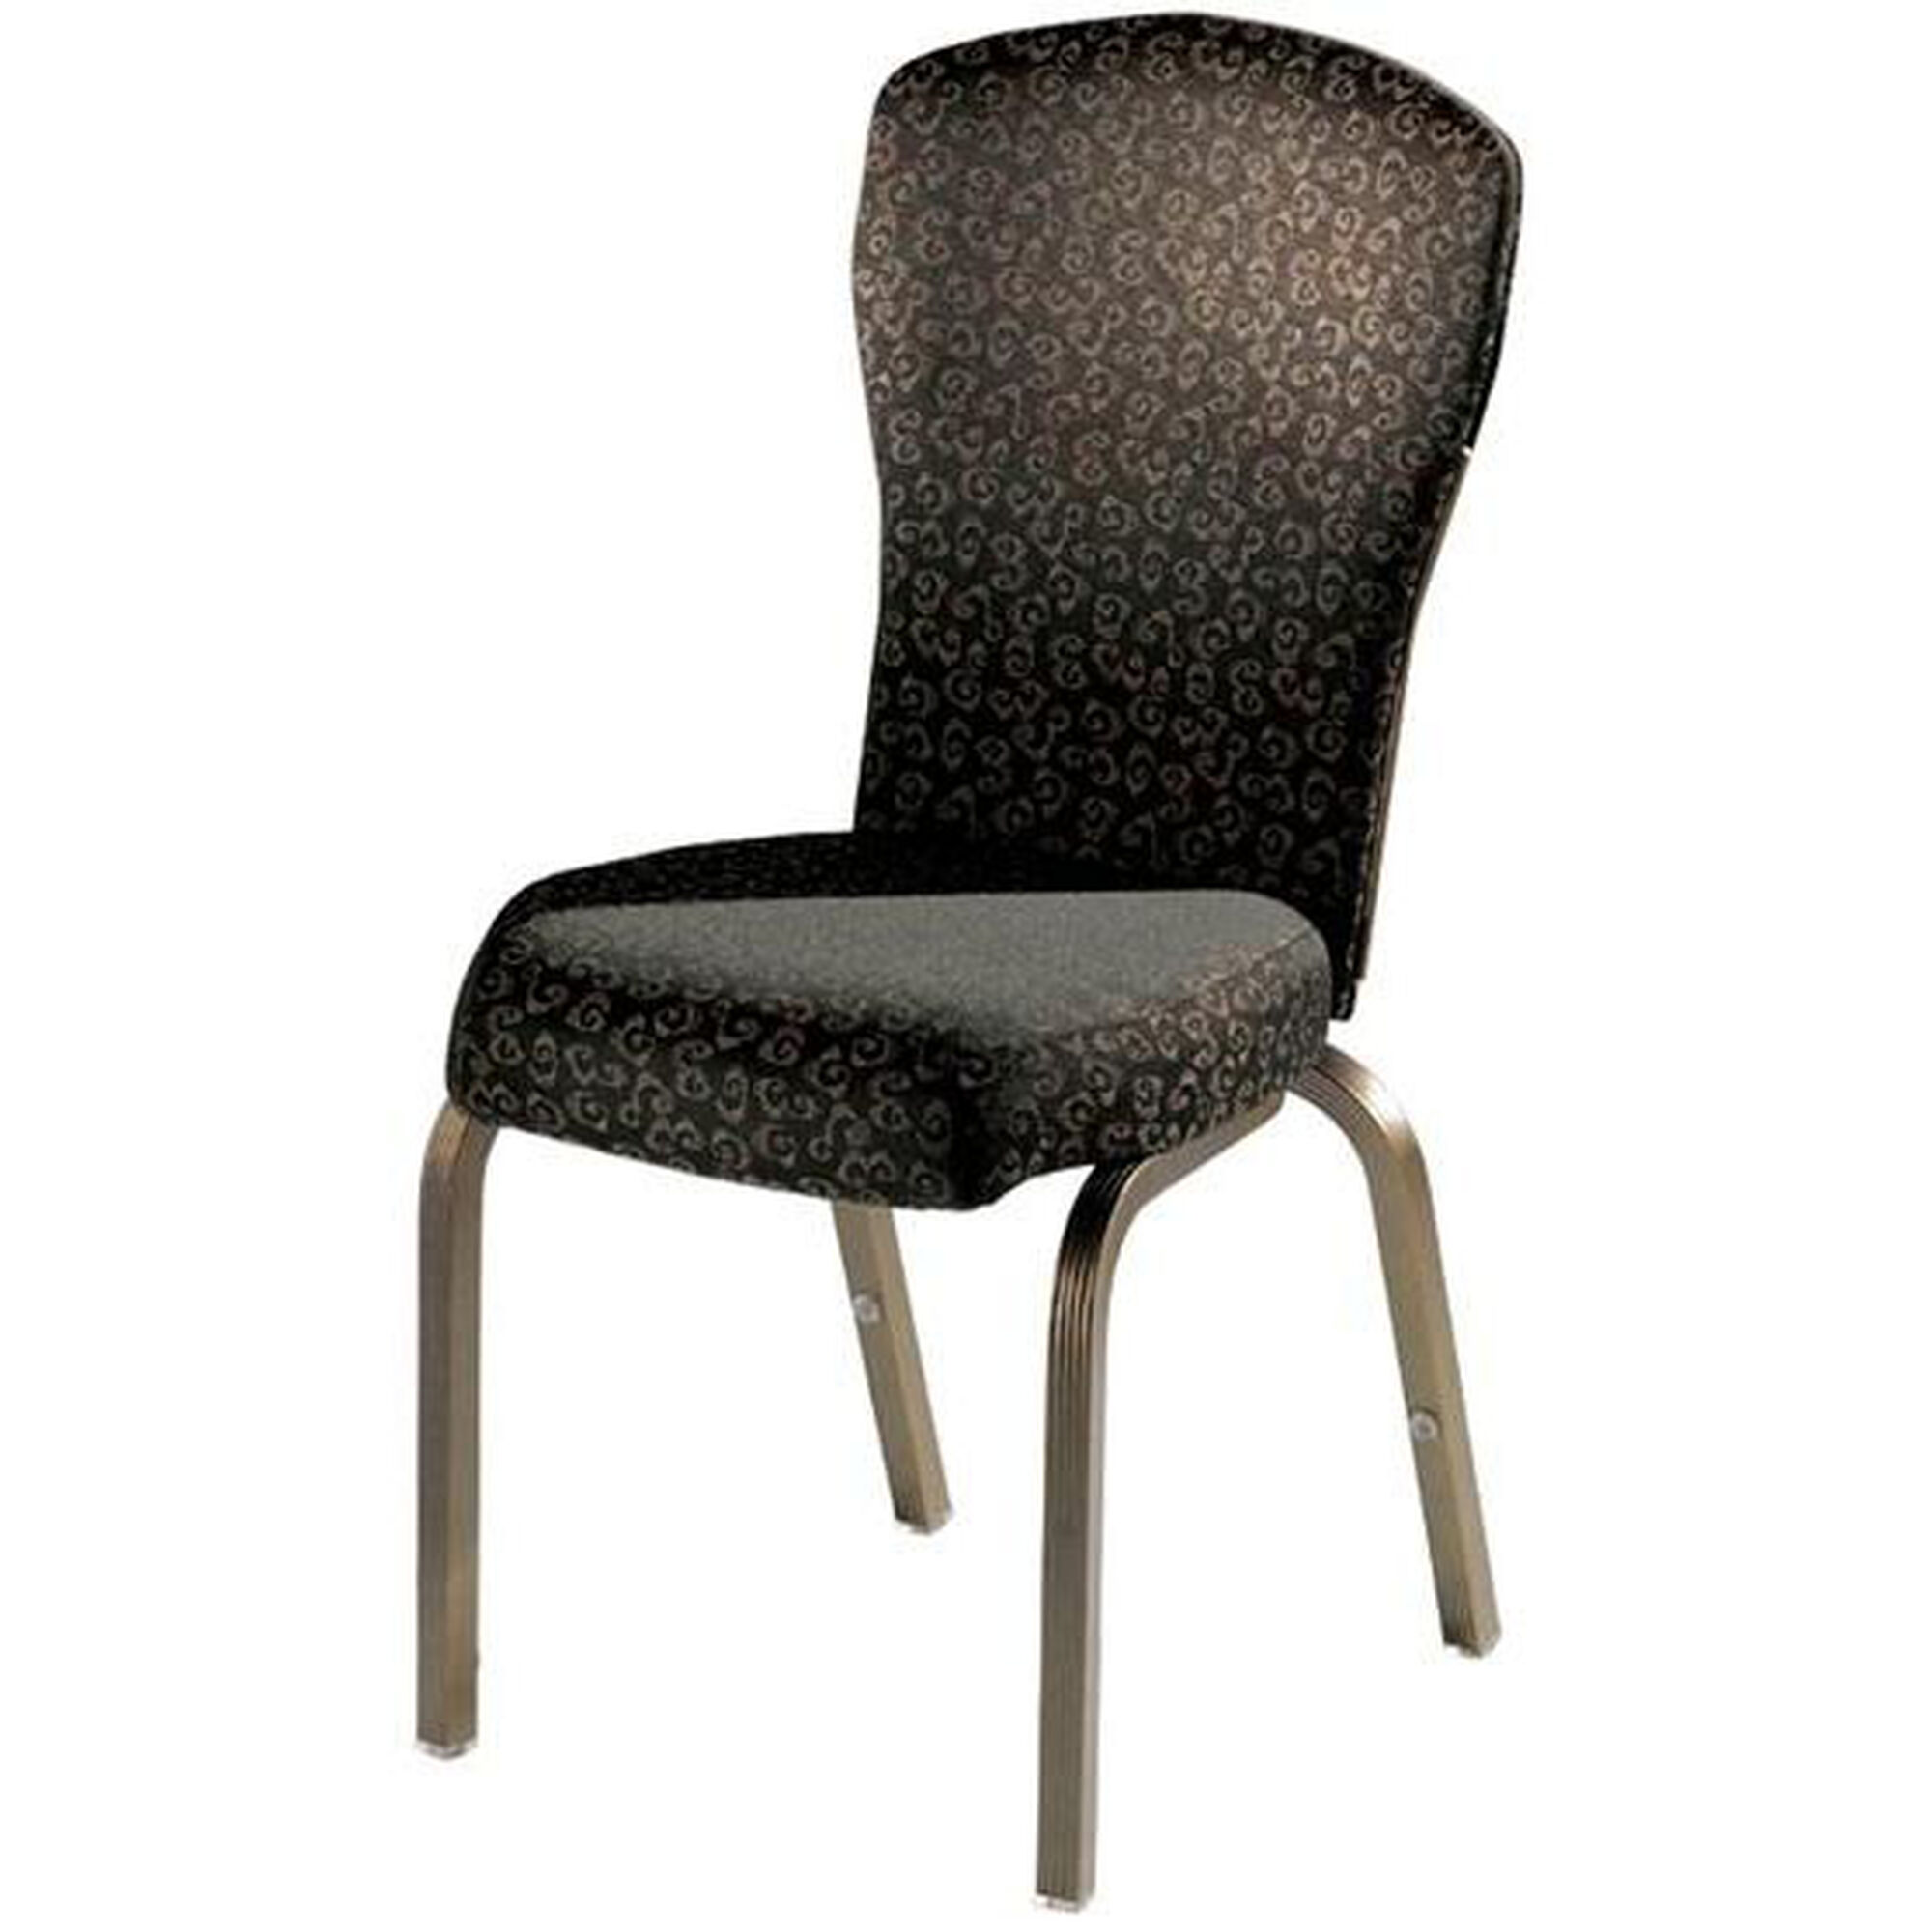 Mts Seating 21 2 Upholstered Vario Chair 21 2